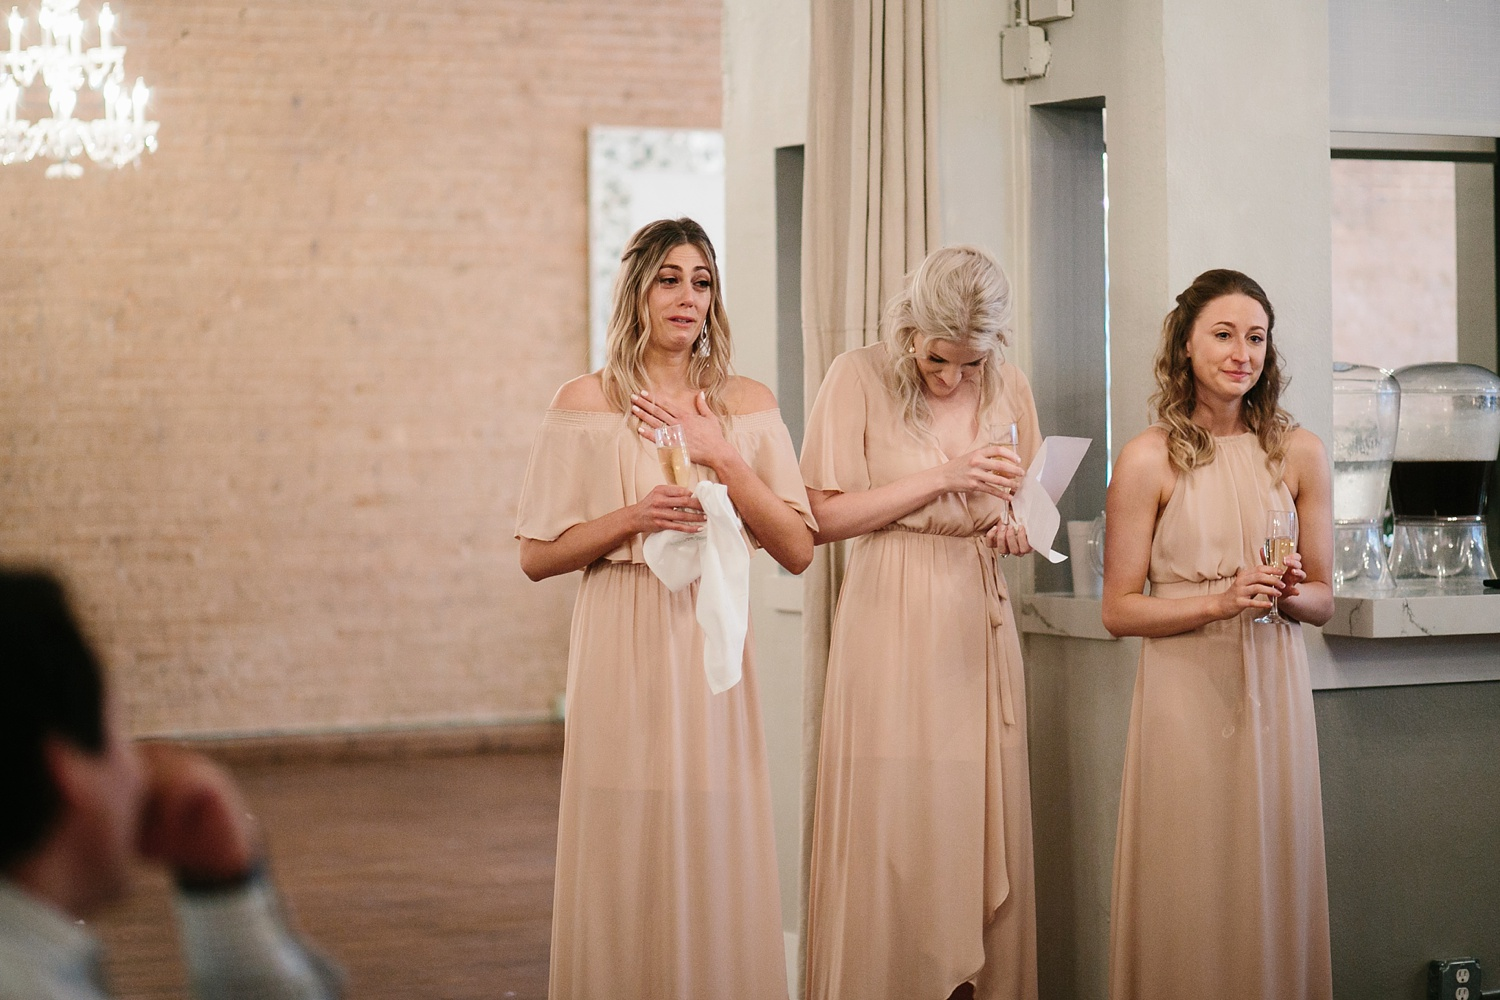 Amber + Daniel an intimate, simple, spring ceremony at Heard Craig Center and reception at Gather in McKinney, Texas by North Texas Wedding Photographer Rachel Meagan Photography 126